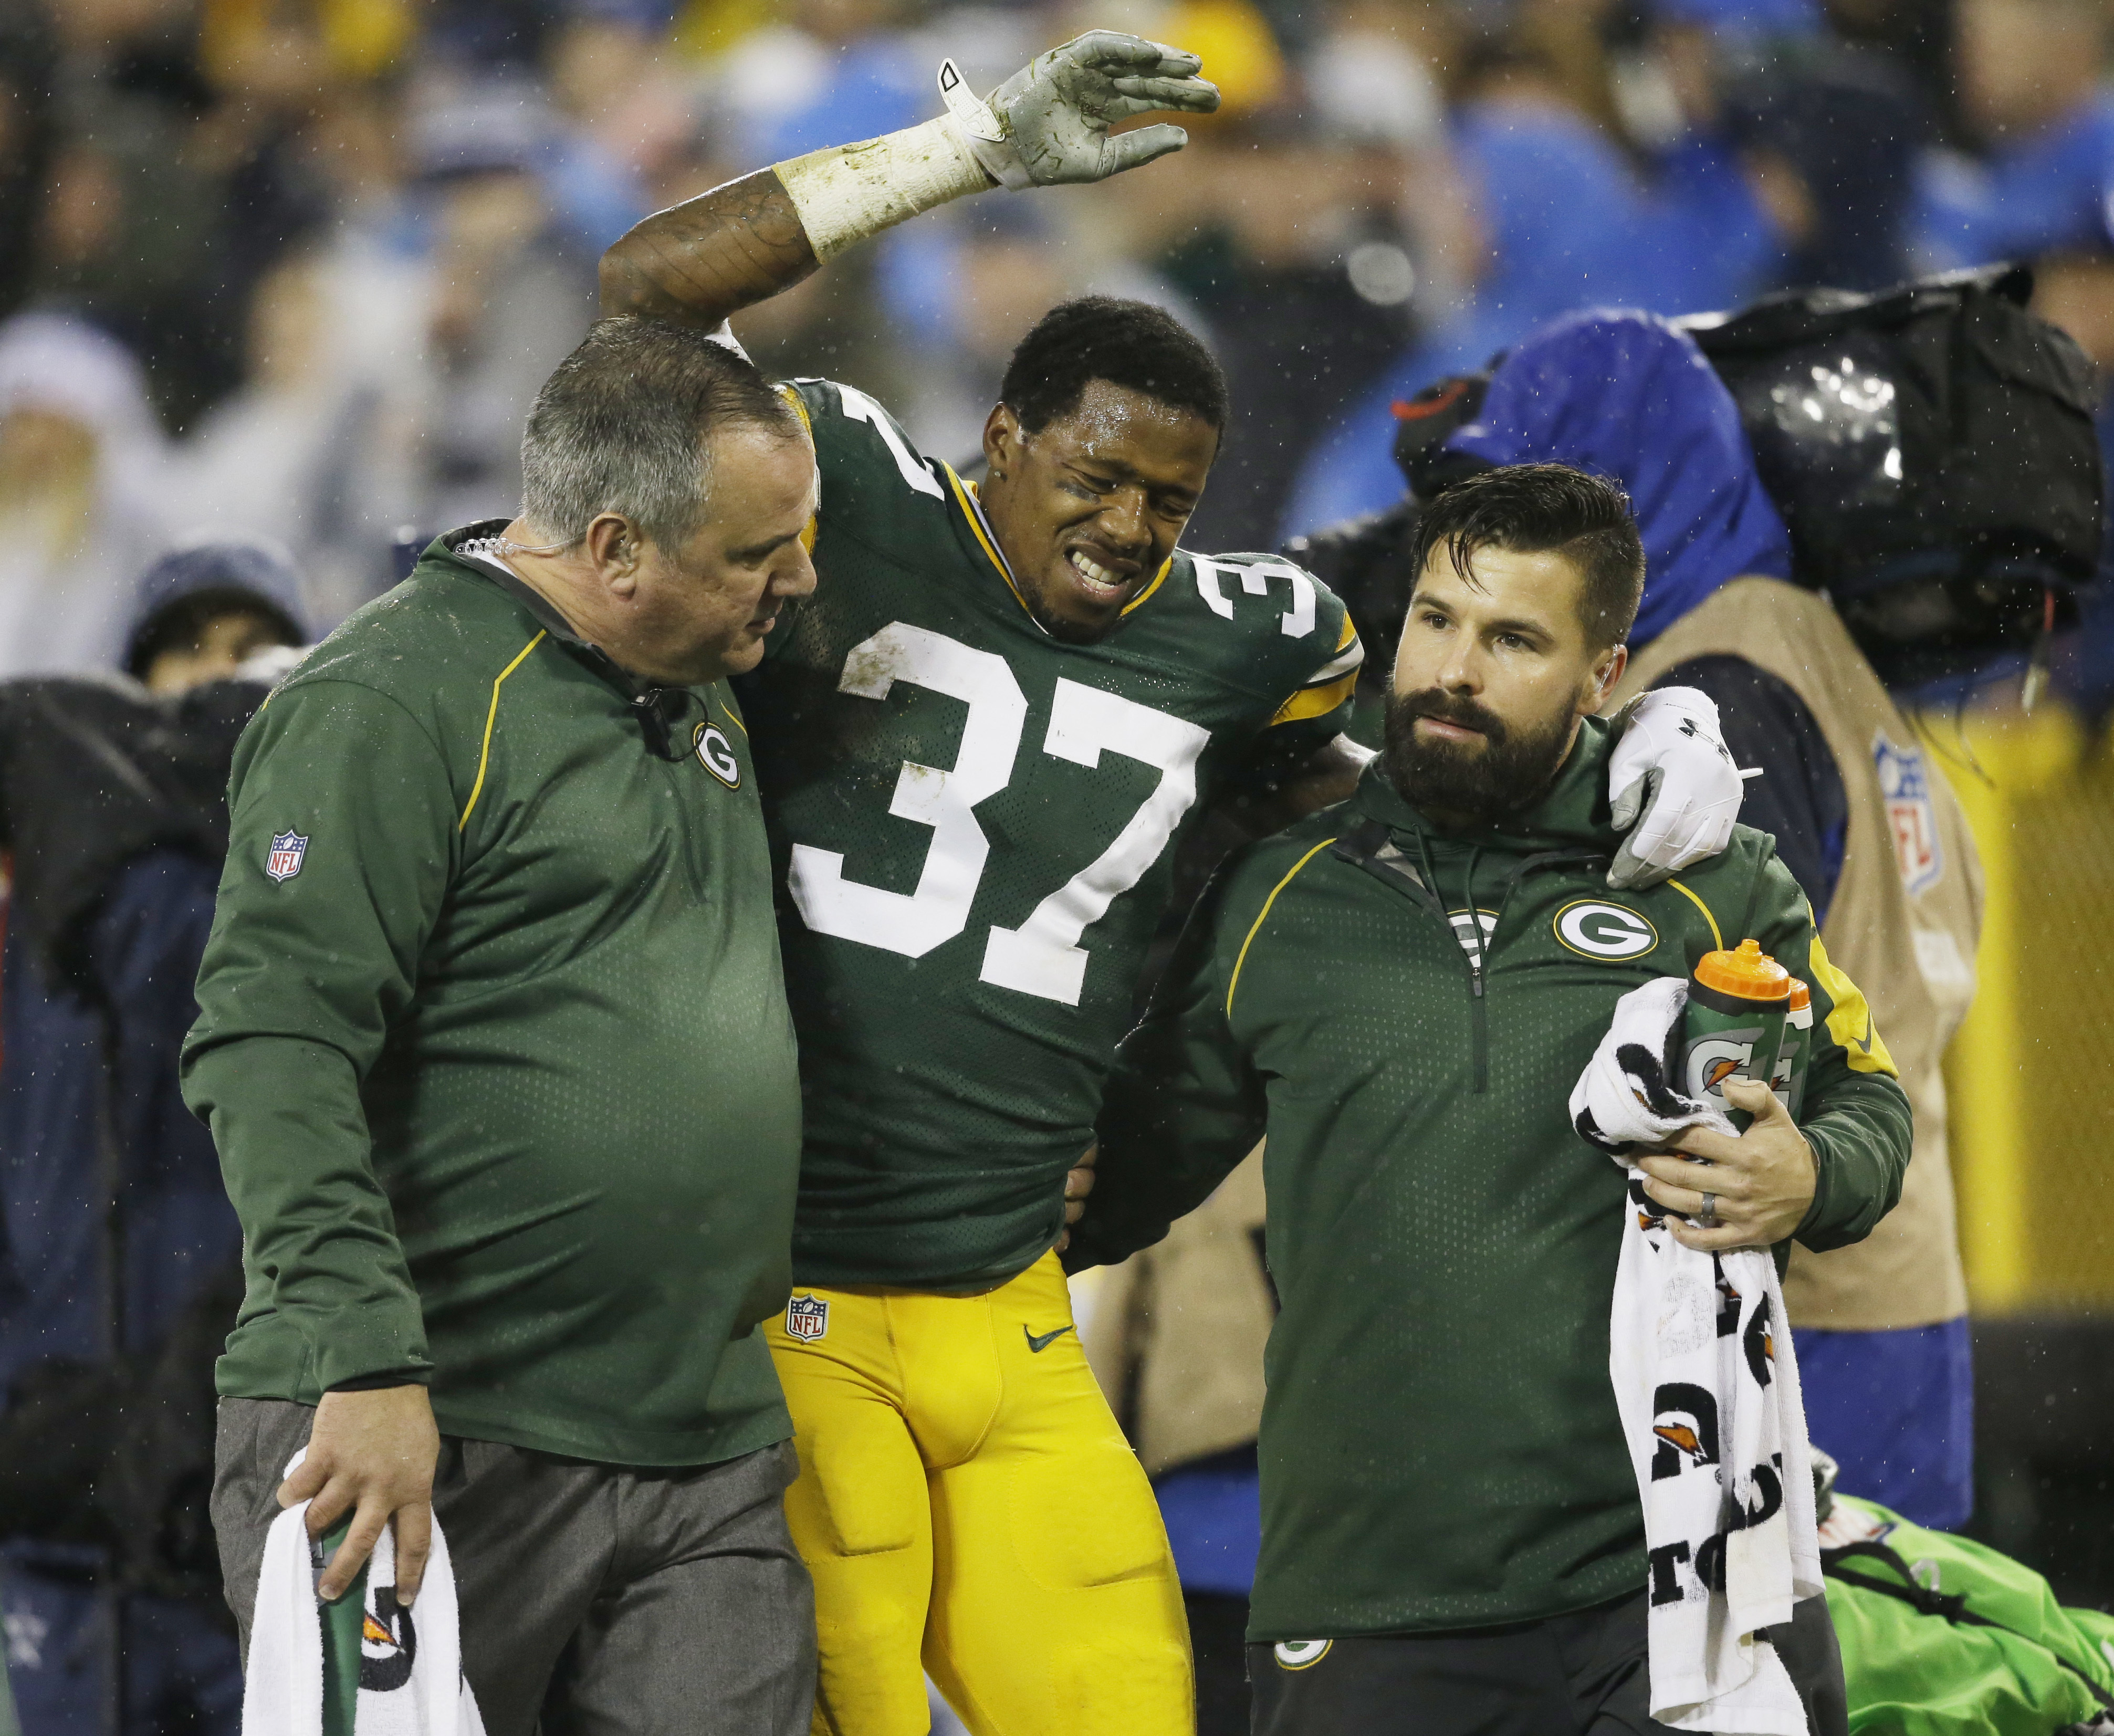 FILE - In this Dec. 13, 2015, file photo, Green Bay Packers' Sam Shields is helped off the field during the first half of an NFL football game against the Dallas Cowboys, in Green Bay, Wis. The Packers roster is running short on healthy cornerbacks going